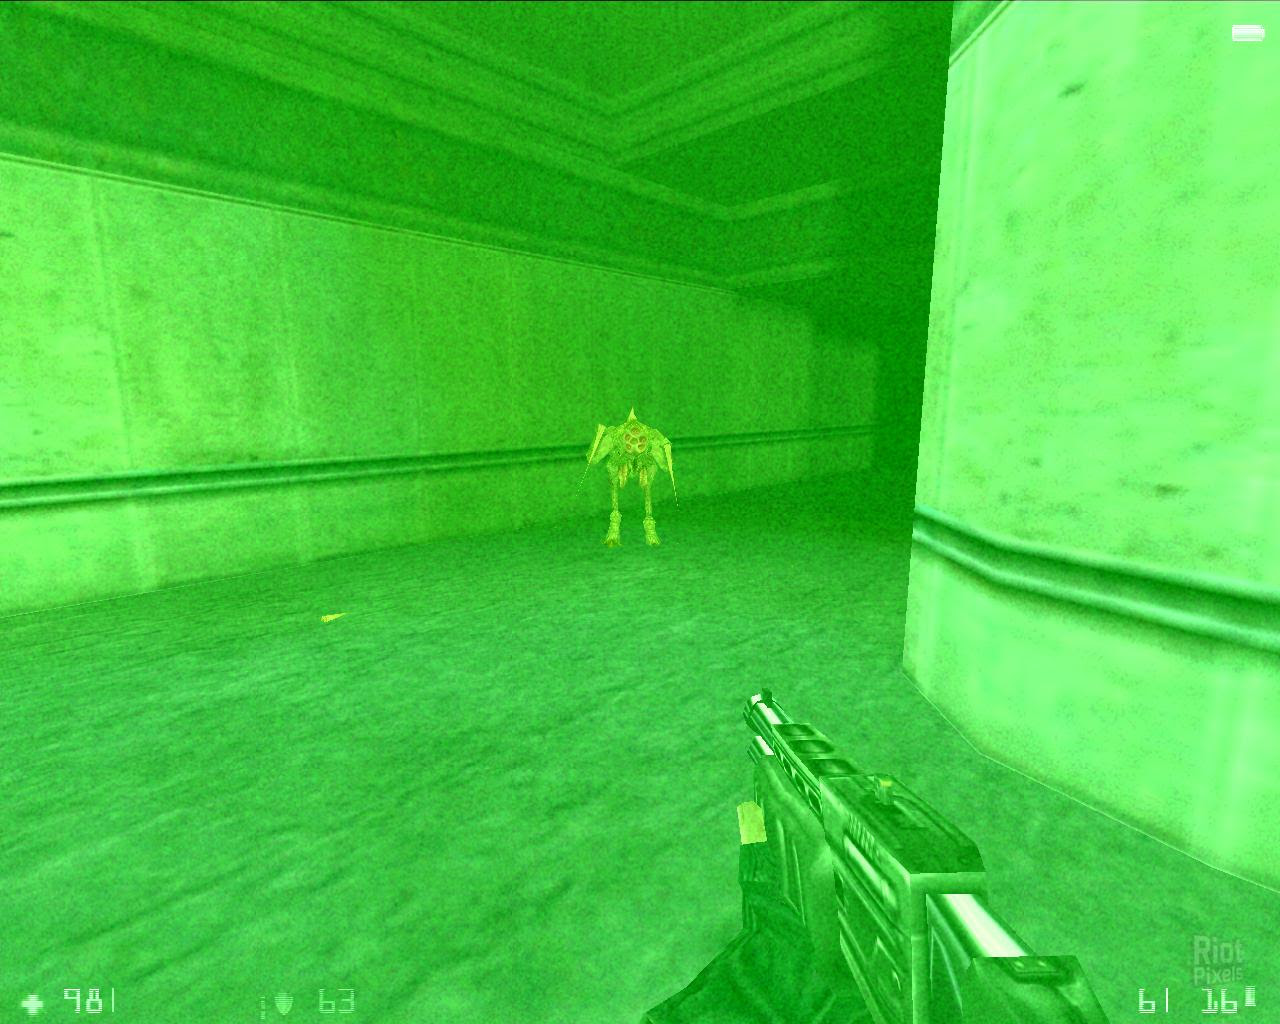 Half Life Opposing Force Game Screenshots At Riot Pixels Images